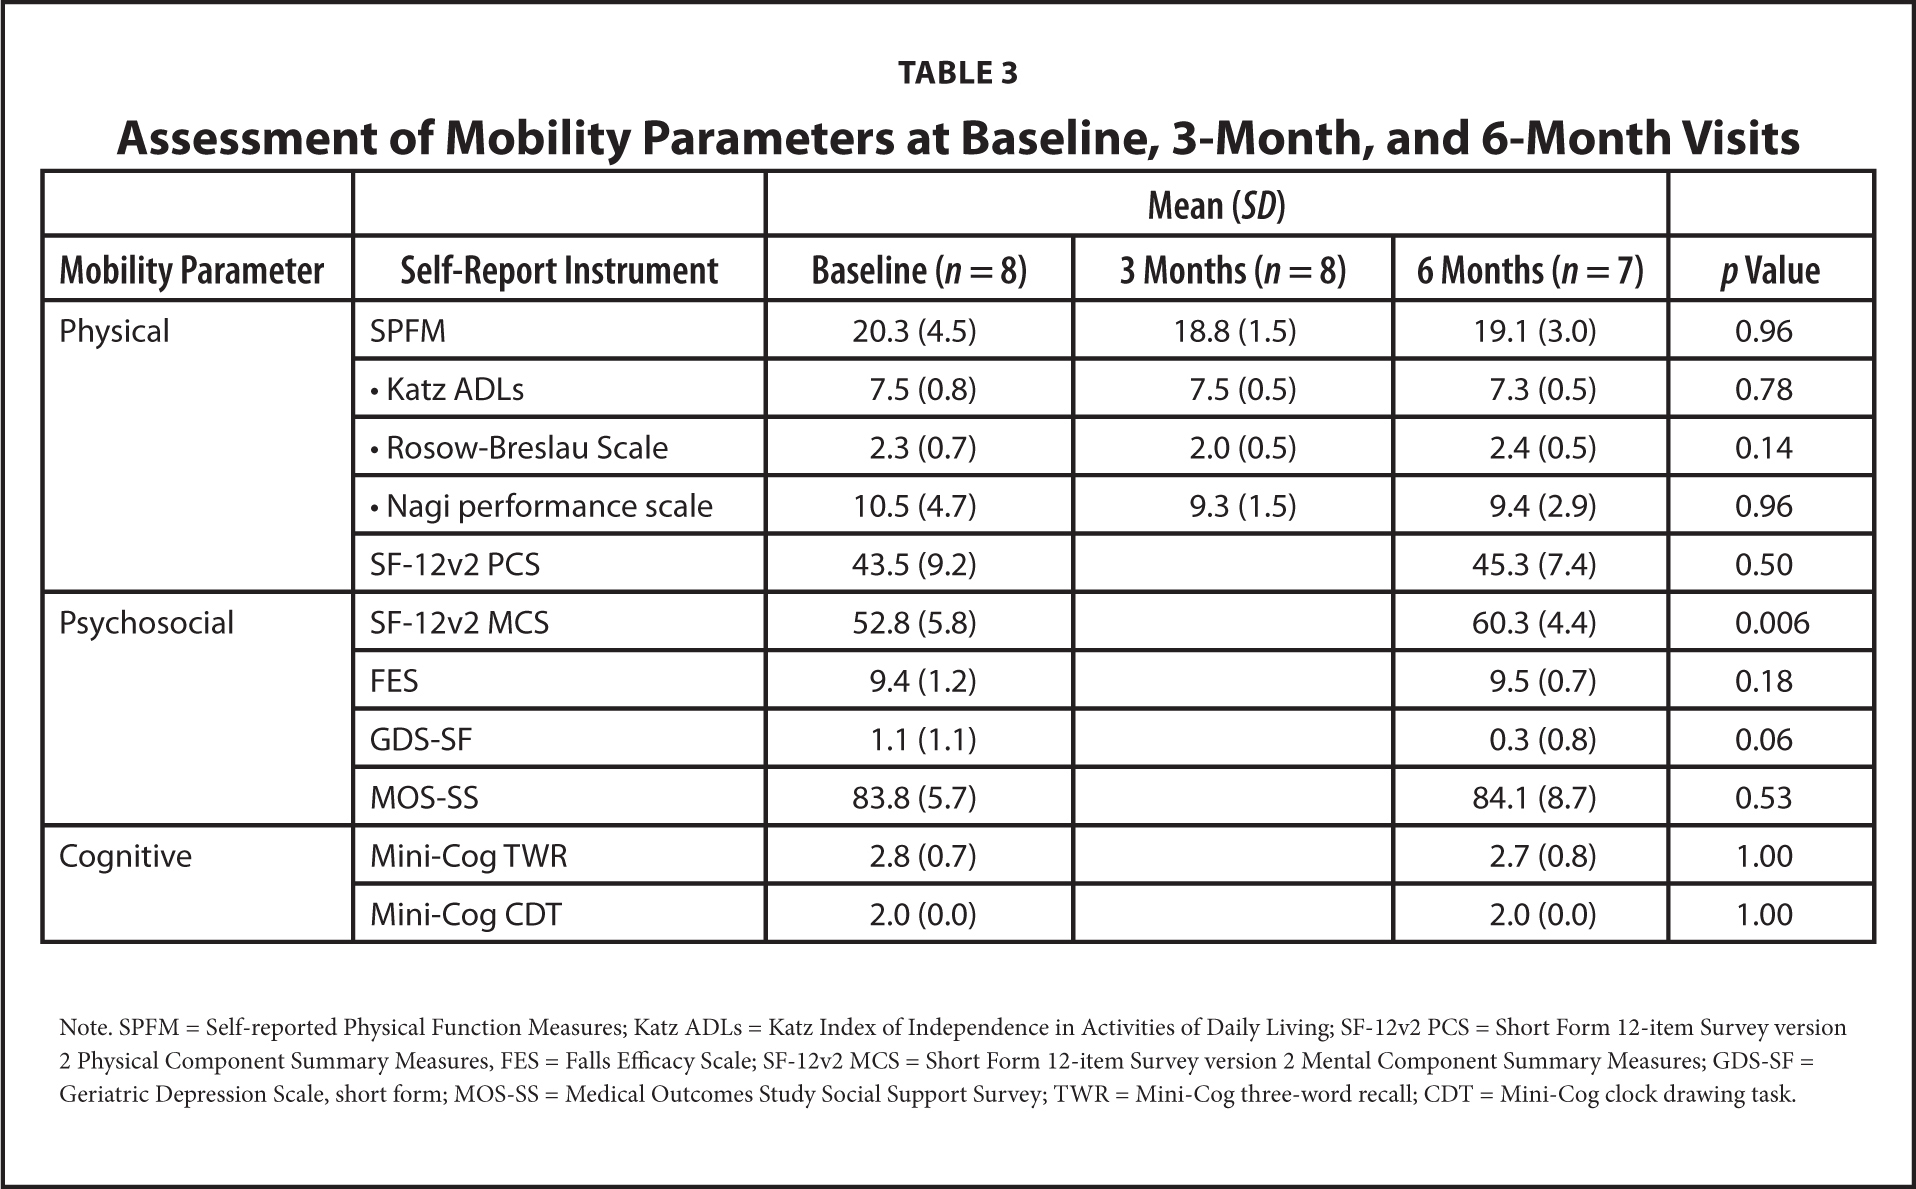 Assessment of Mobility Parameters at Baseline, 3-Month, and 6-Month Visits